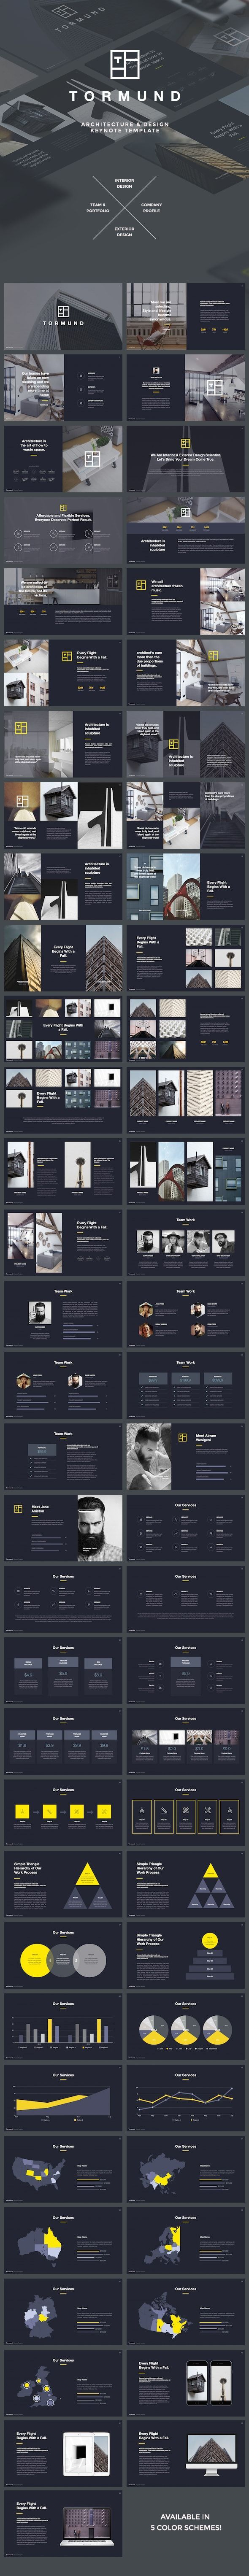 Thormund设计与产品组合主题演讲模板#slidehack.com•下载➝https://graphicriver.net/item/thormund-design-portfolio-keynote-template/18421151?ref=pxcr